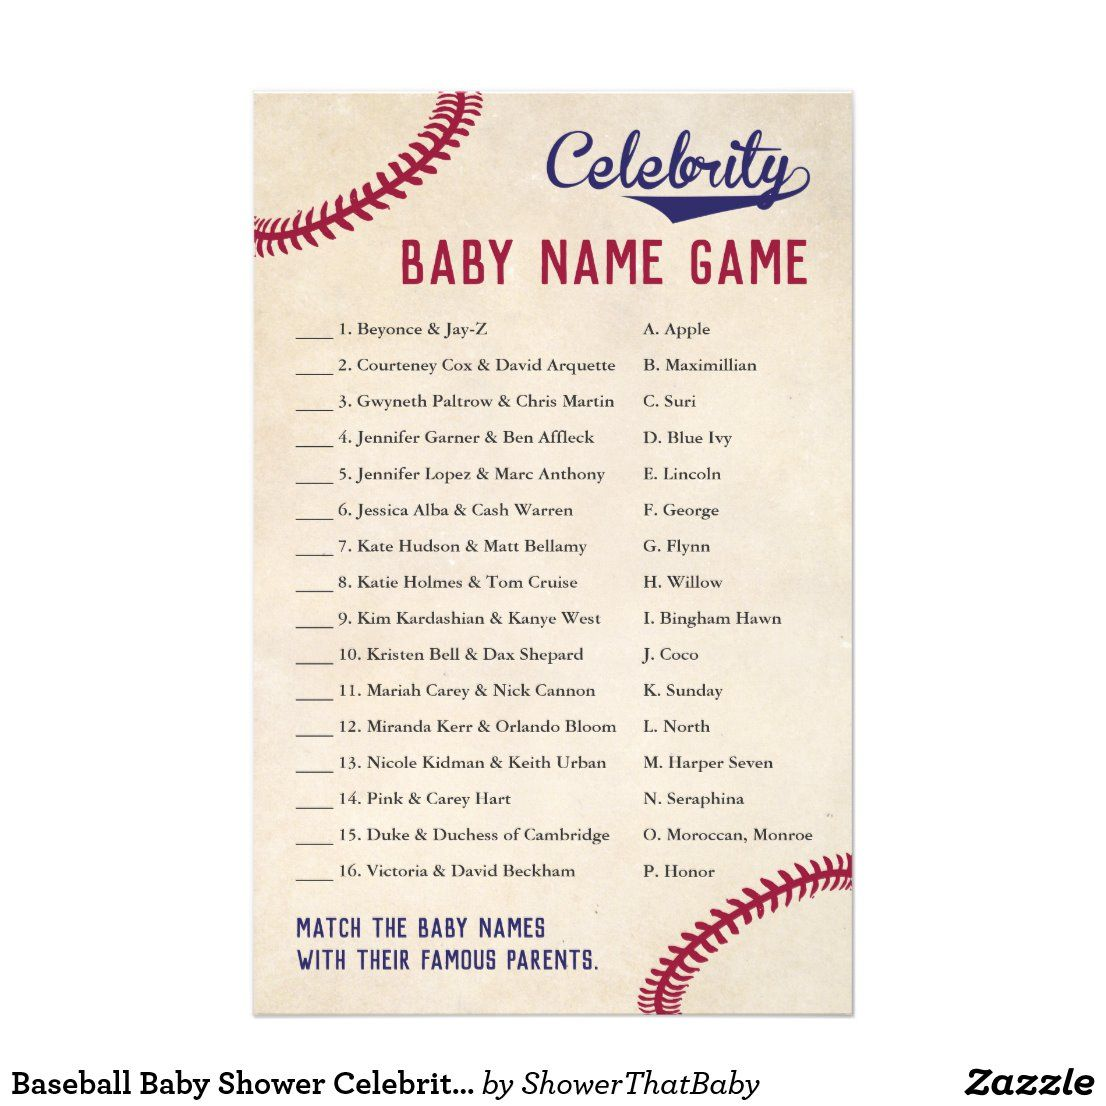 Baseball Baby Shower Celebrity Baby Name Quiz Flyer Zazzle Com Celebrity Baby Names Baby Shower Quiz Baseball Baby Shower